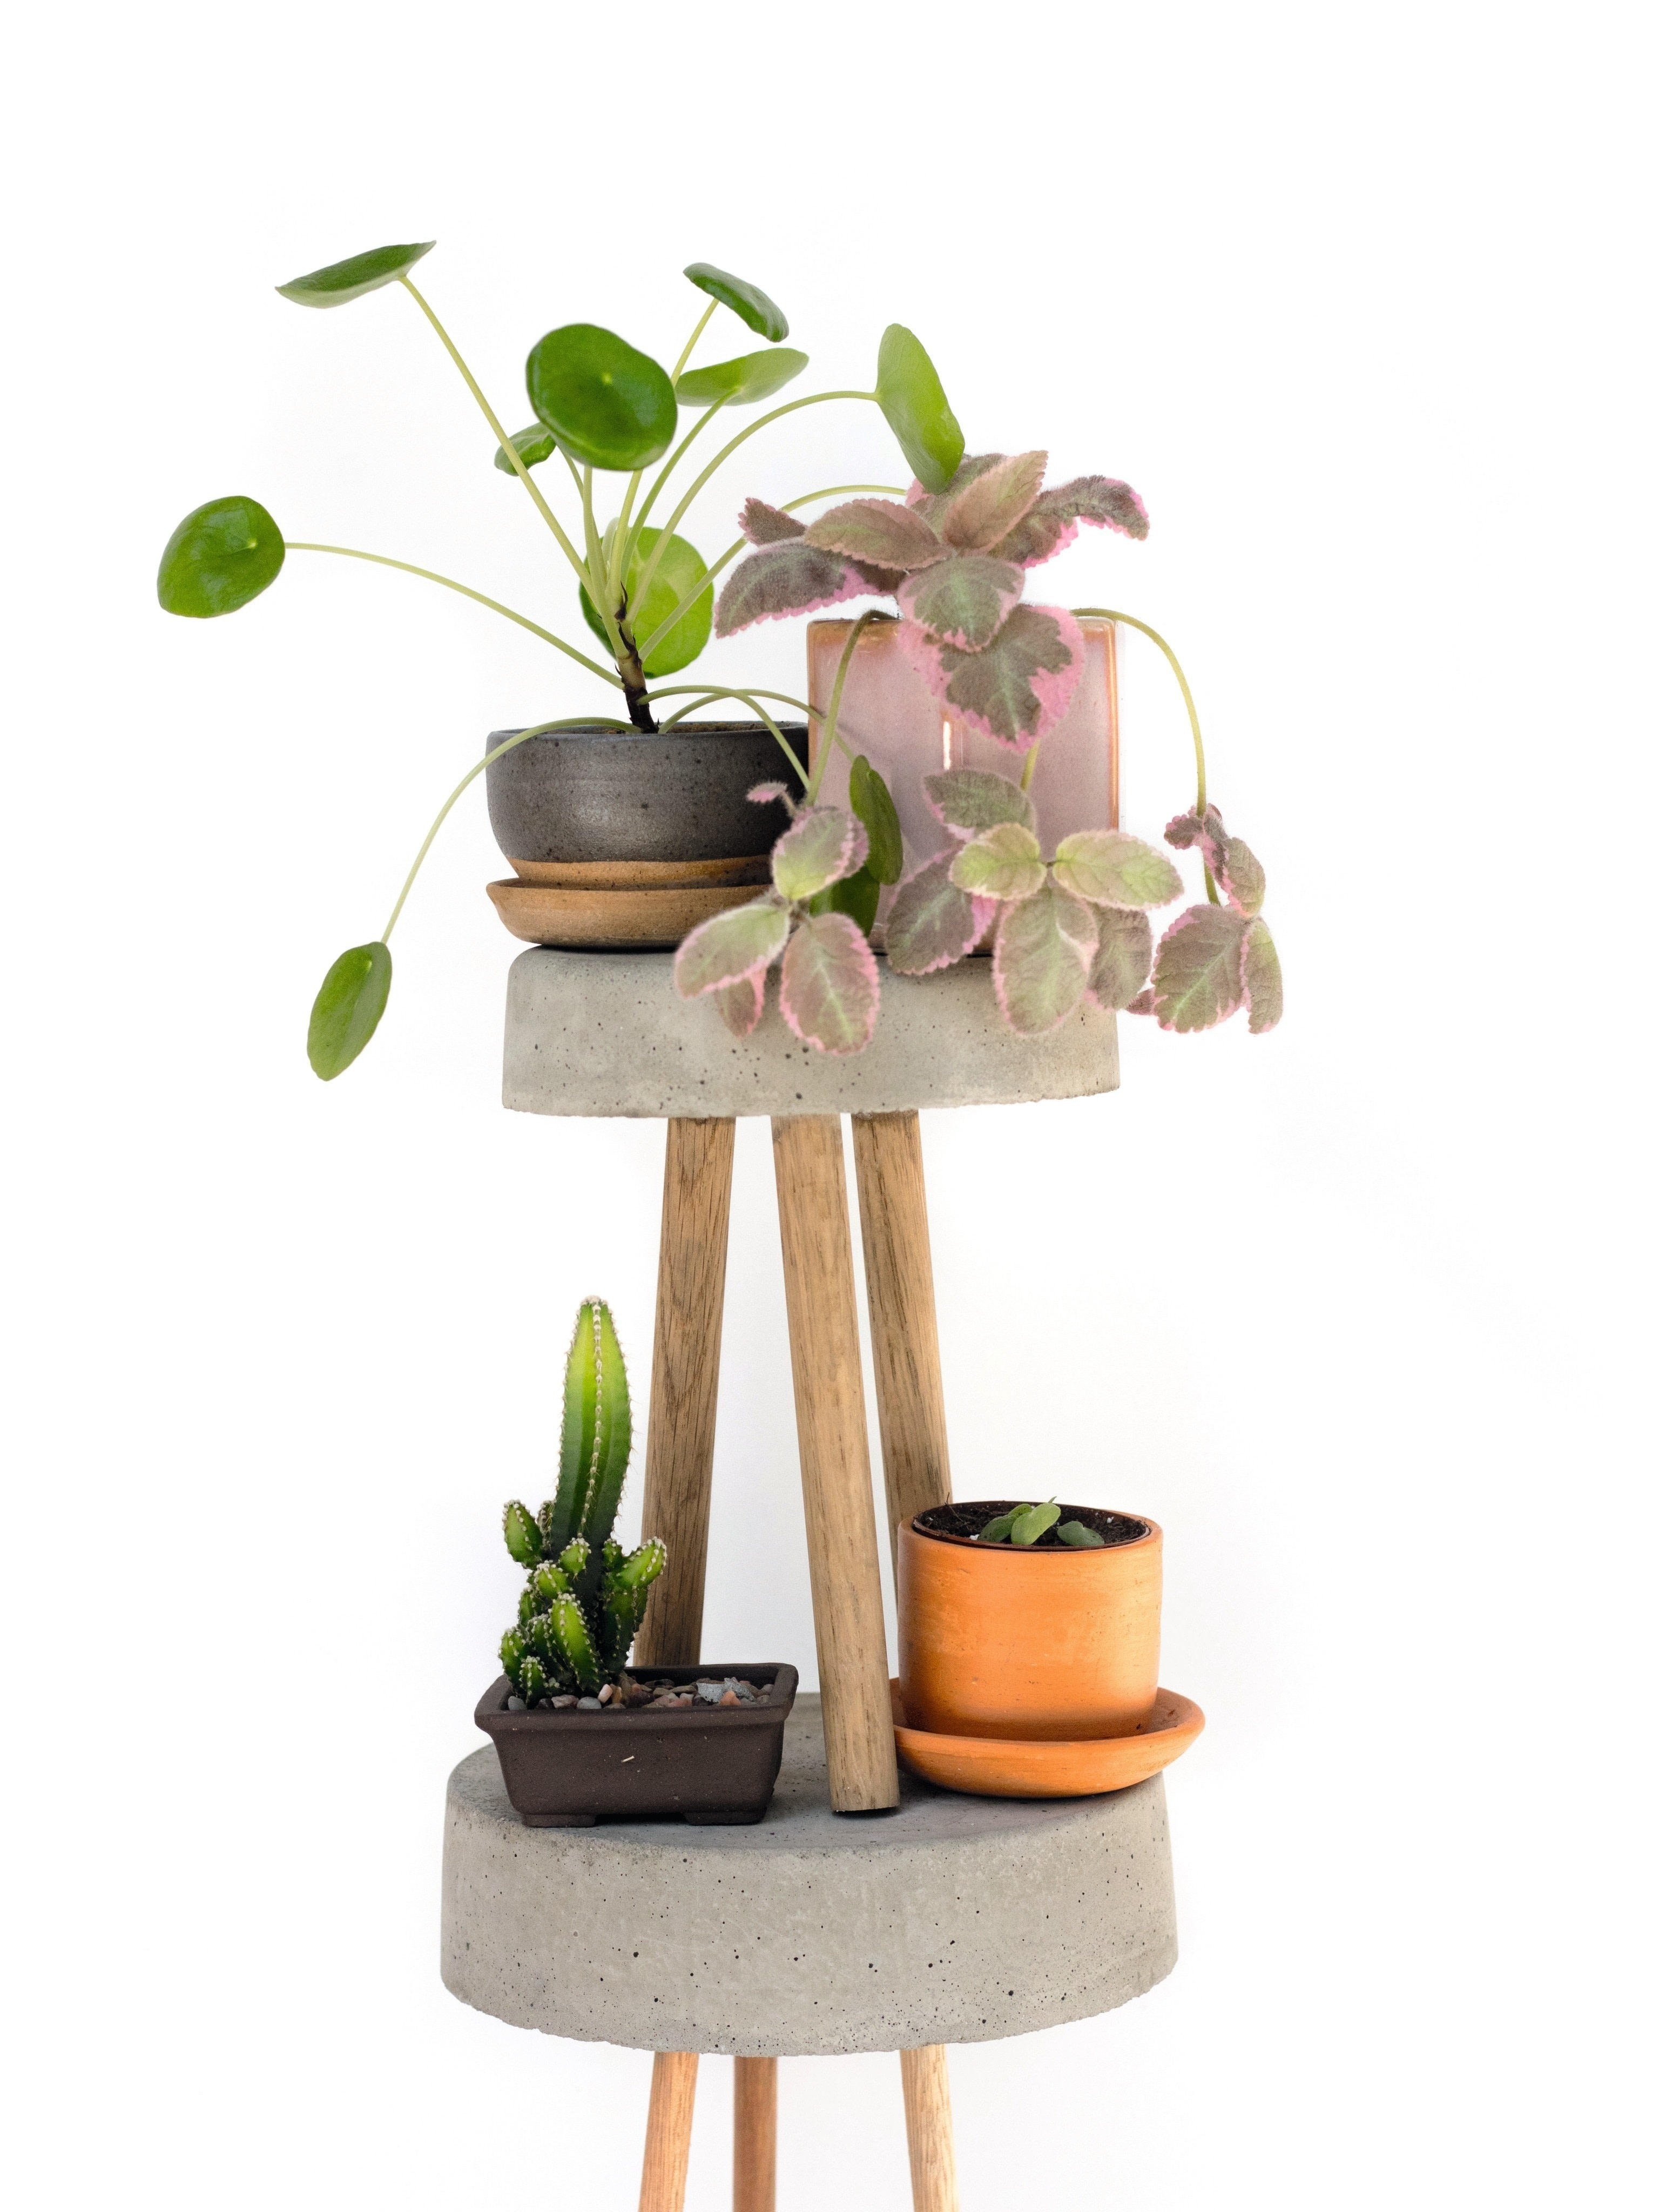 Plant Stands · Extract from How to Raise a Plant by Morgan